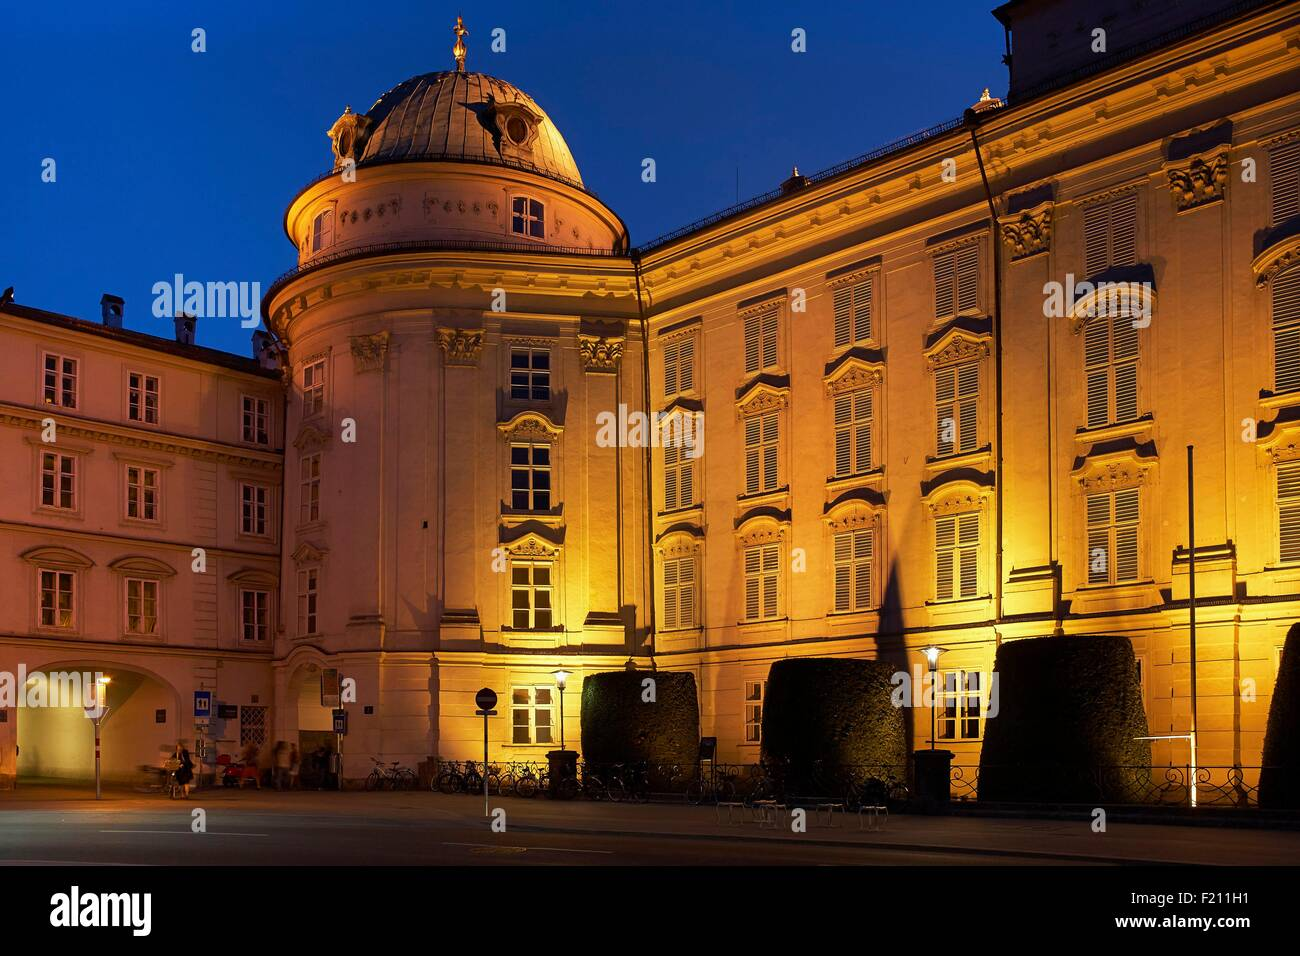 Austria, Tyrol, Innsbruck, Blue hour at the Imperial Palace - Stock Image